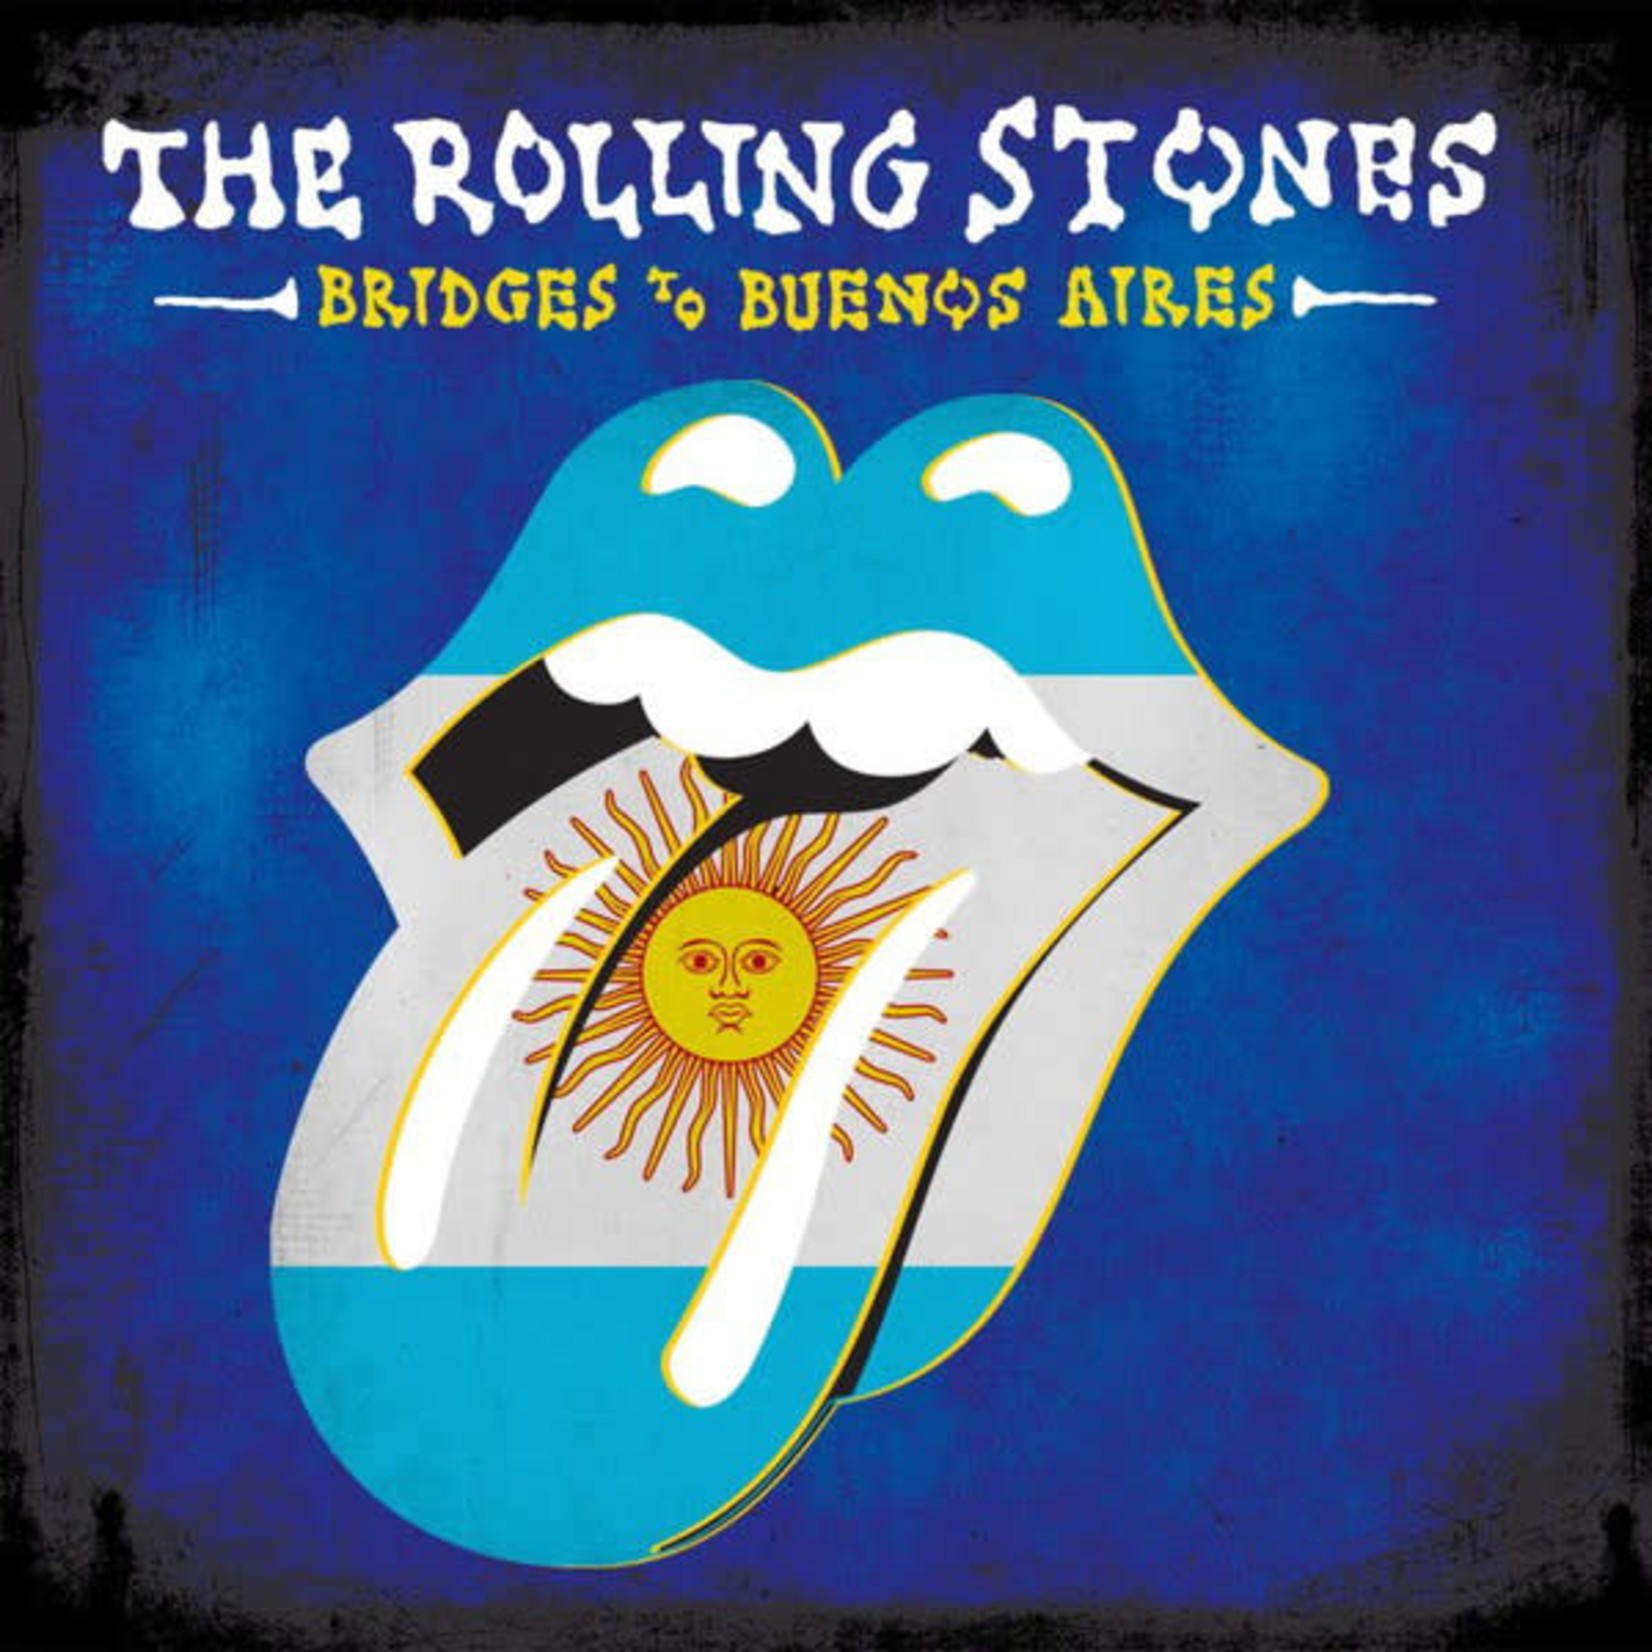 ROLLING STONES BRIDGES TO BUENOS AIRES  LIMITED EDITION BLUE 3LP